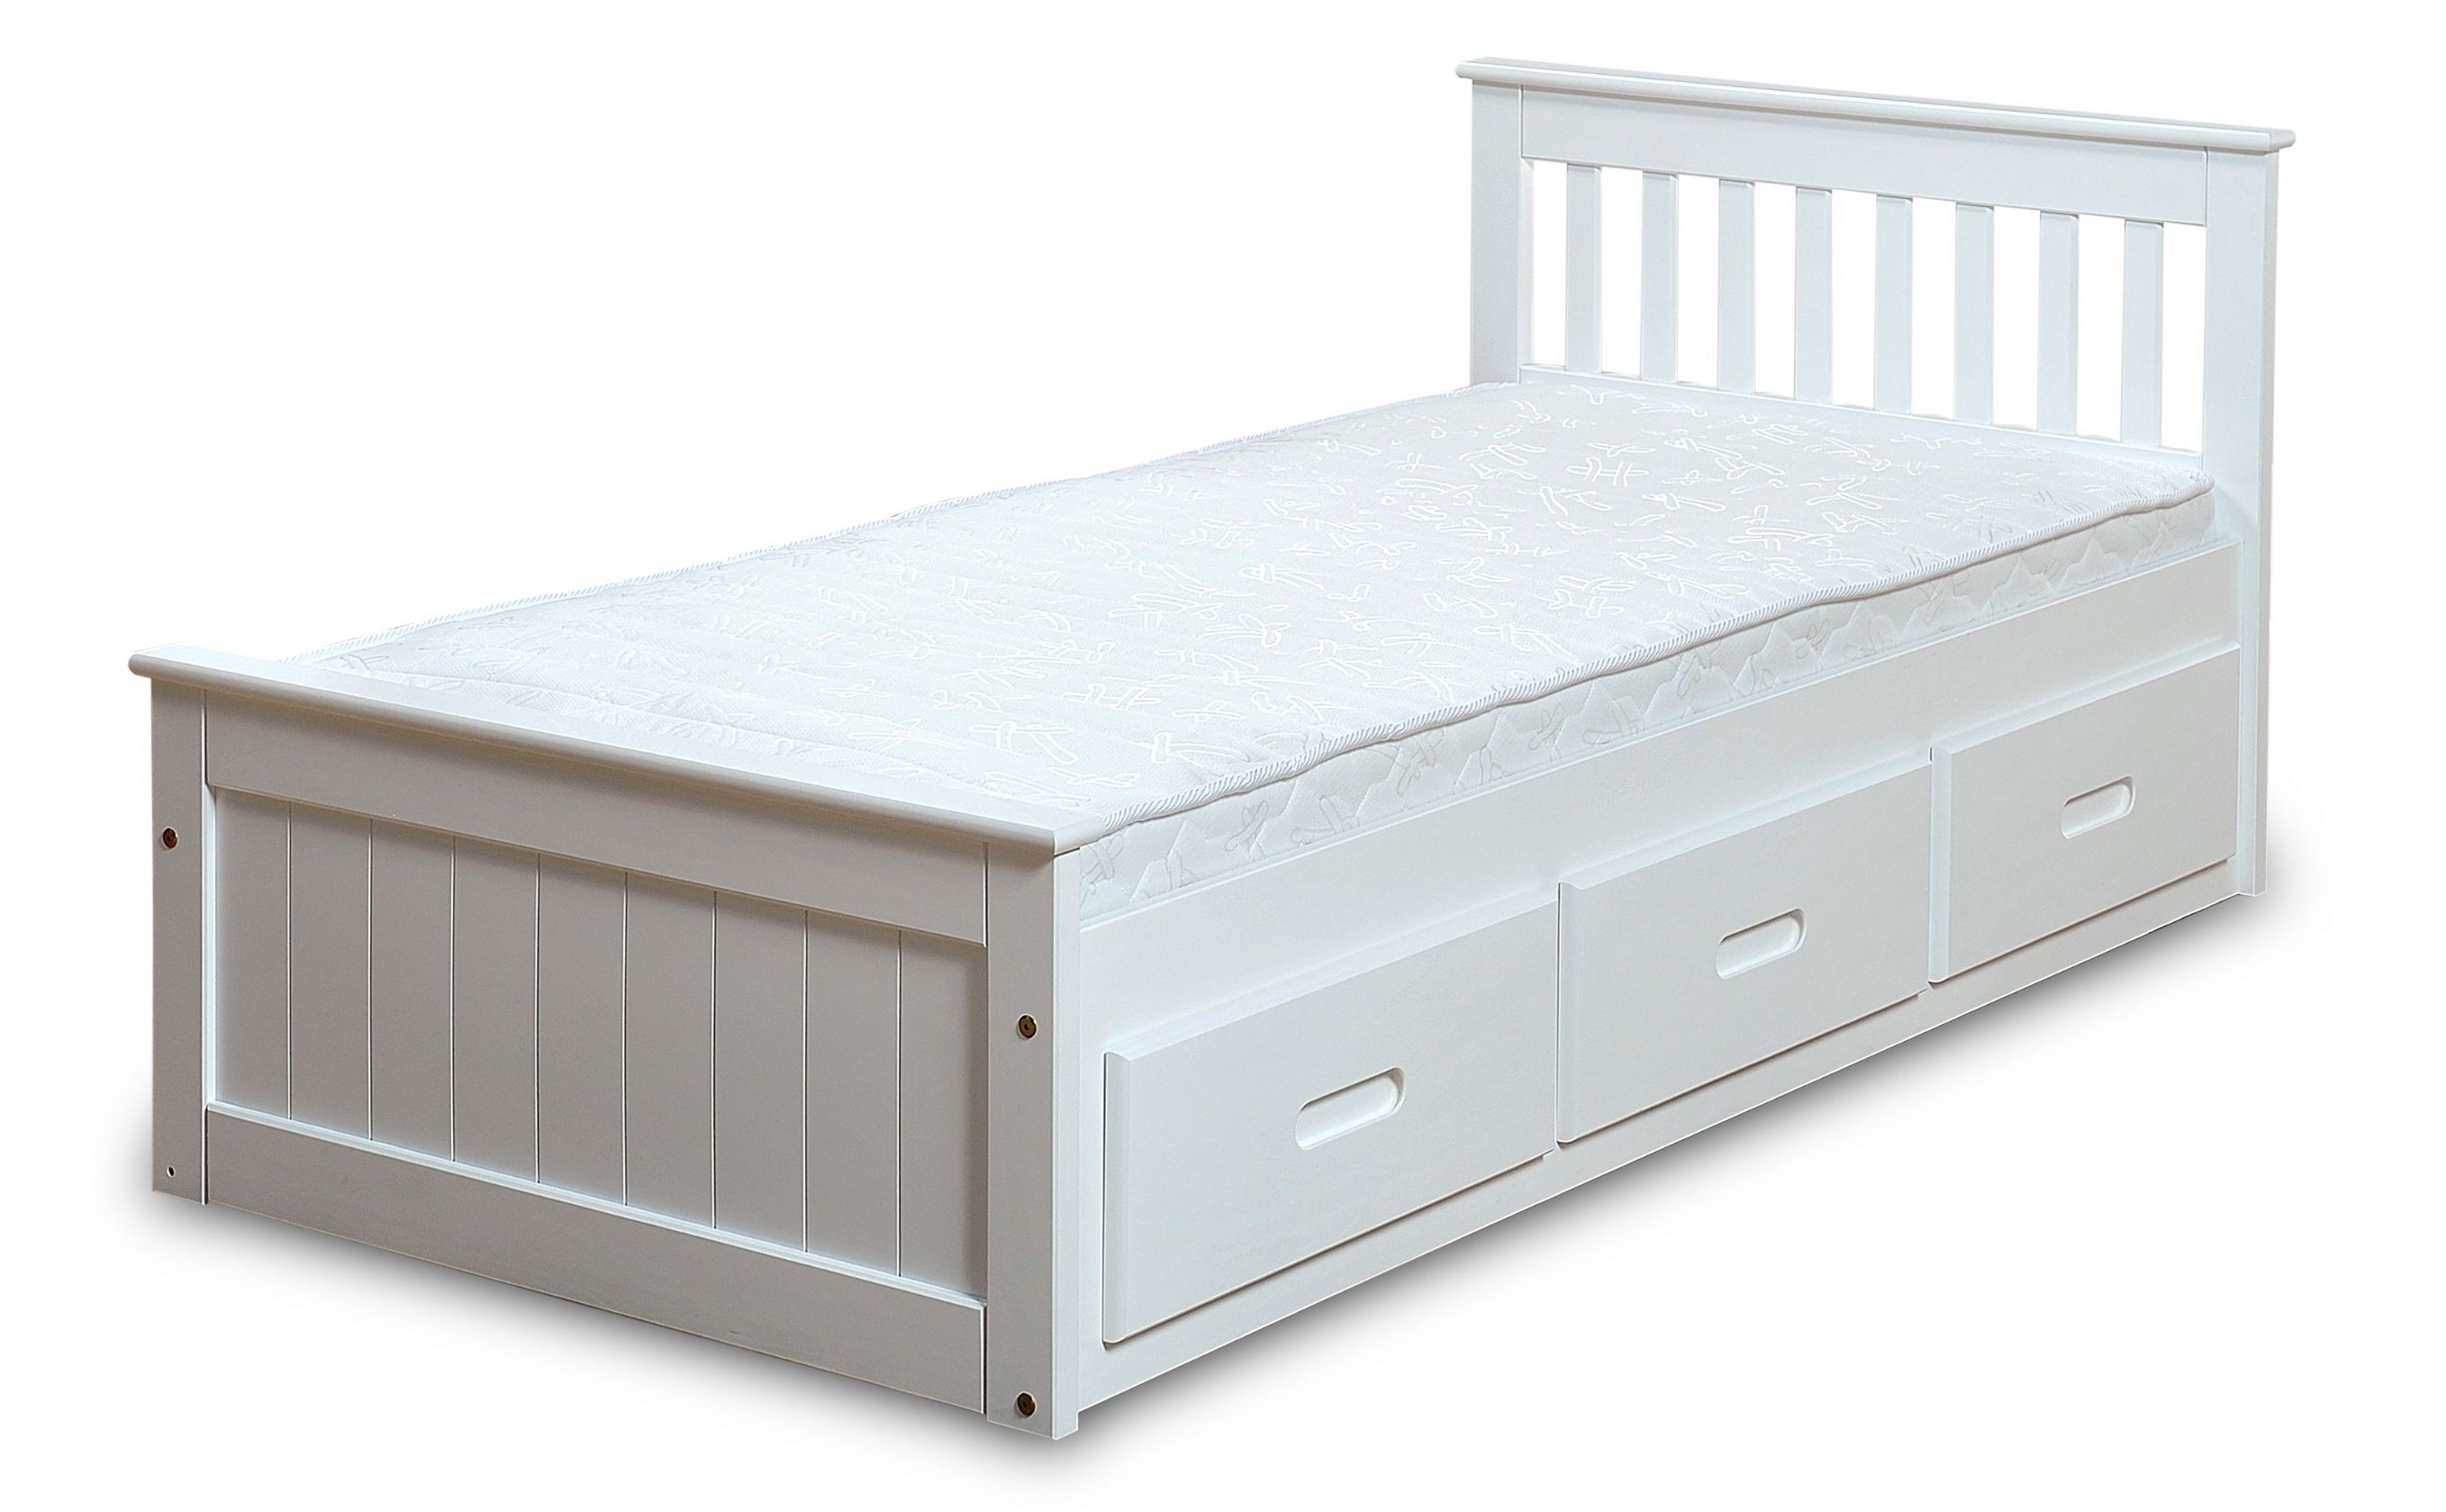 Single Bed With Storage Drawers Storage Drawers Single Bed With Storage Drawers